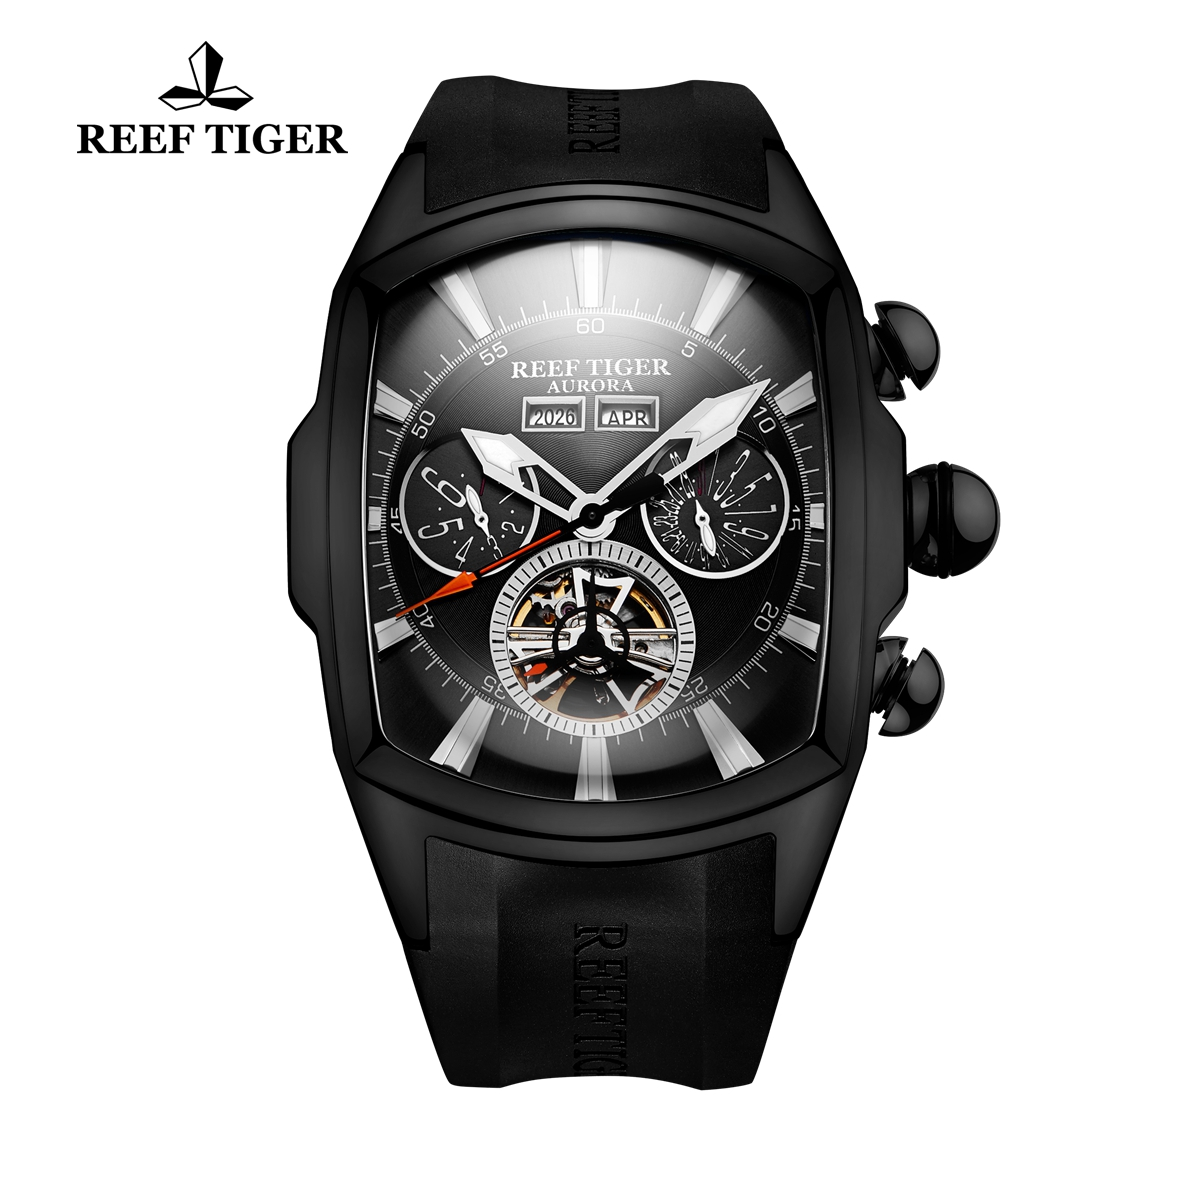 Reef Tiger Automatic Sport Watches PVD Case Black Dial Rubber Strap Watches RGA3069-BBB